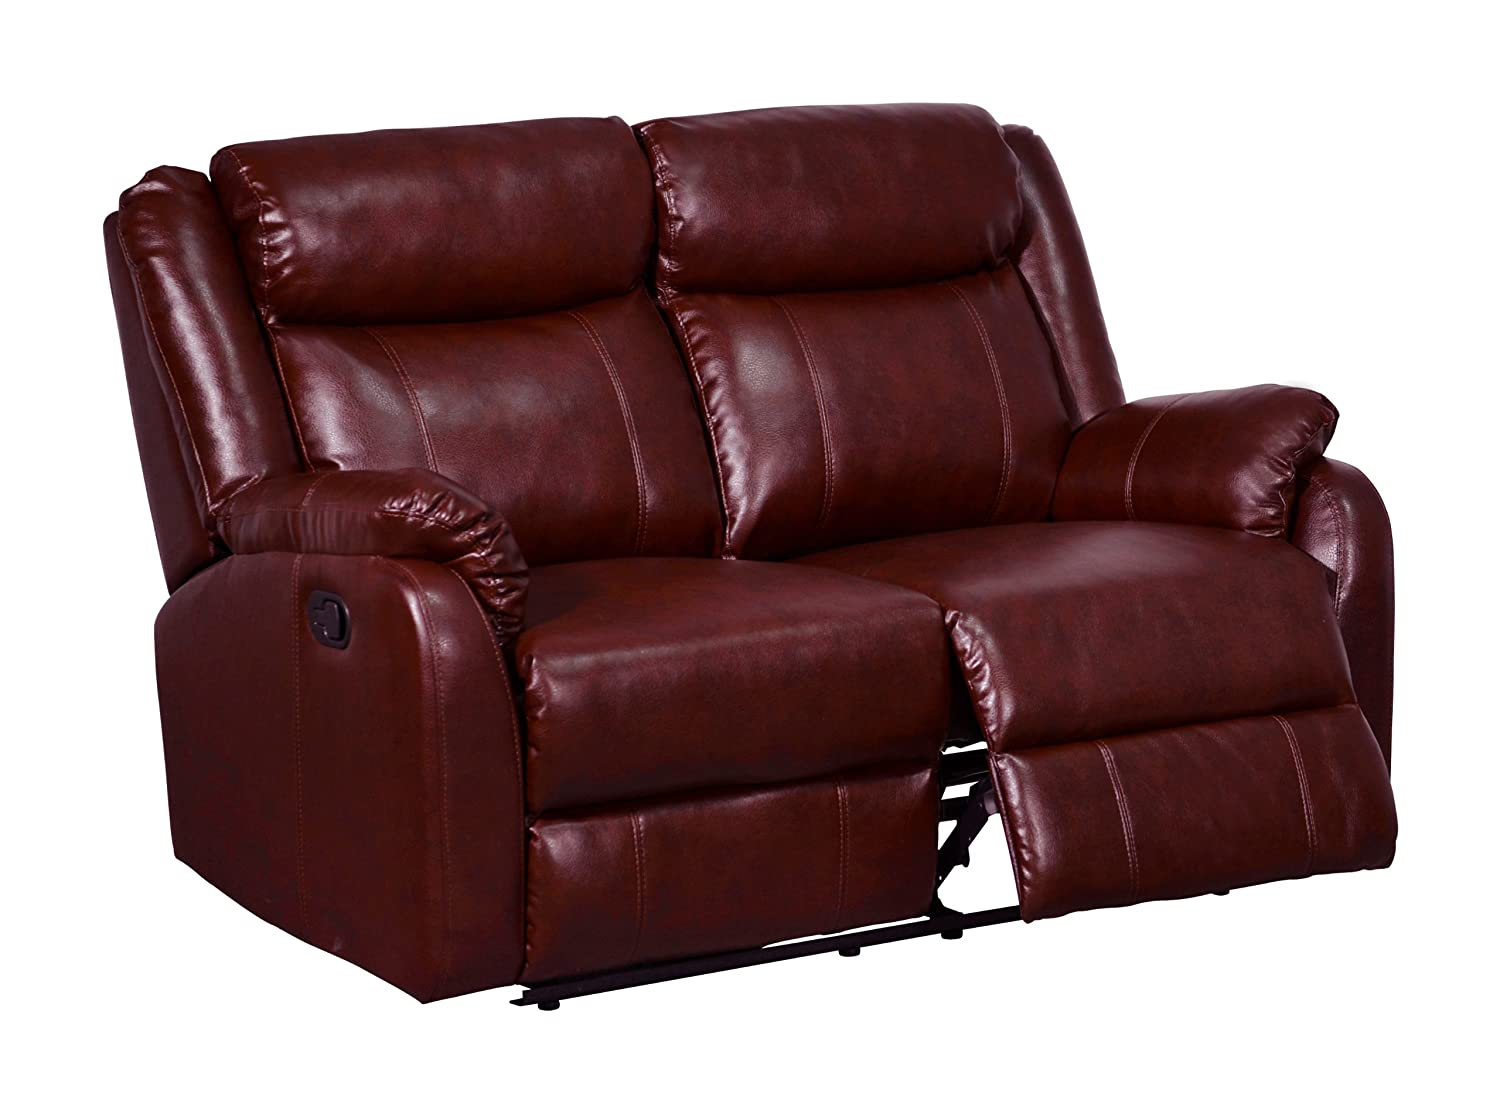 Global Furniture Reclining Loveseat - Burgundy